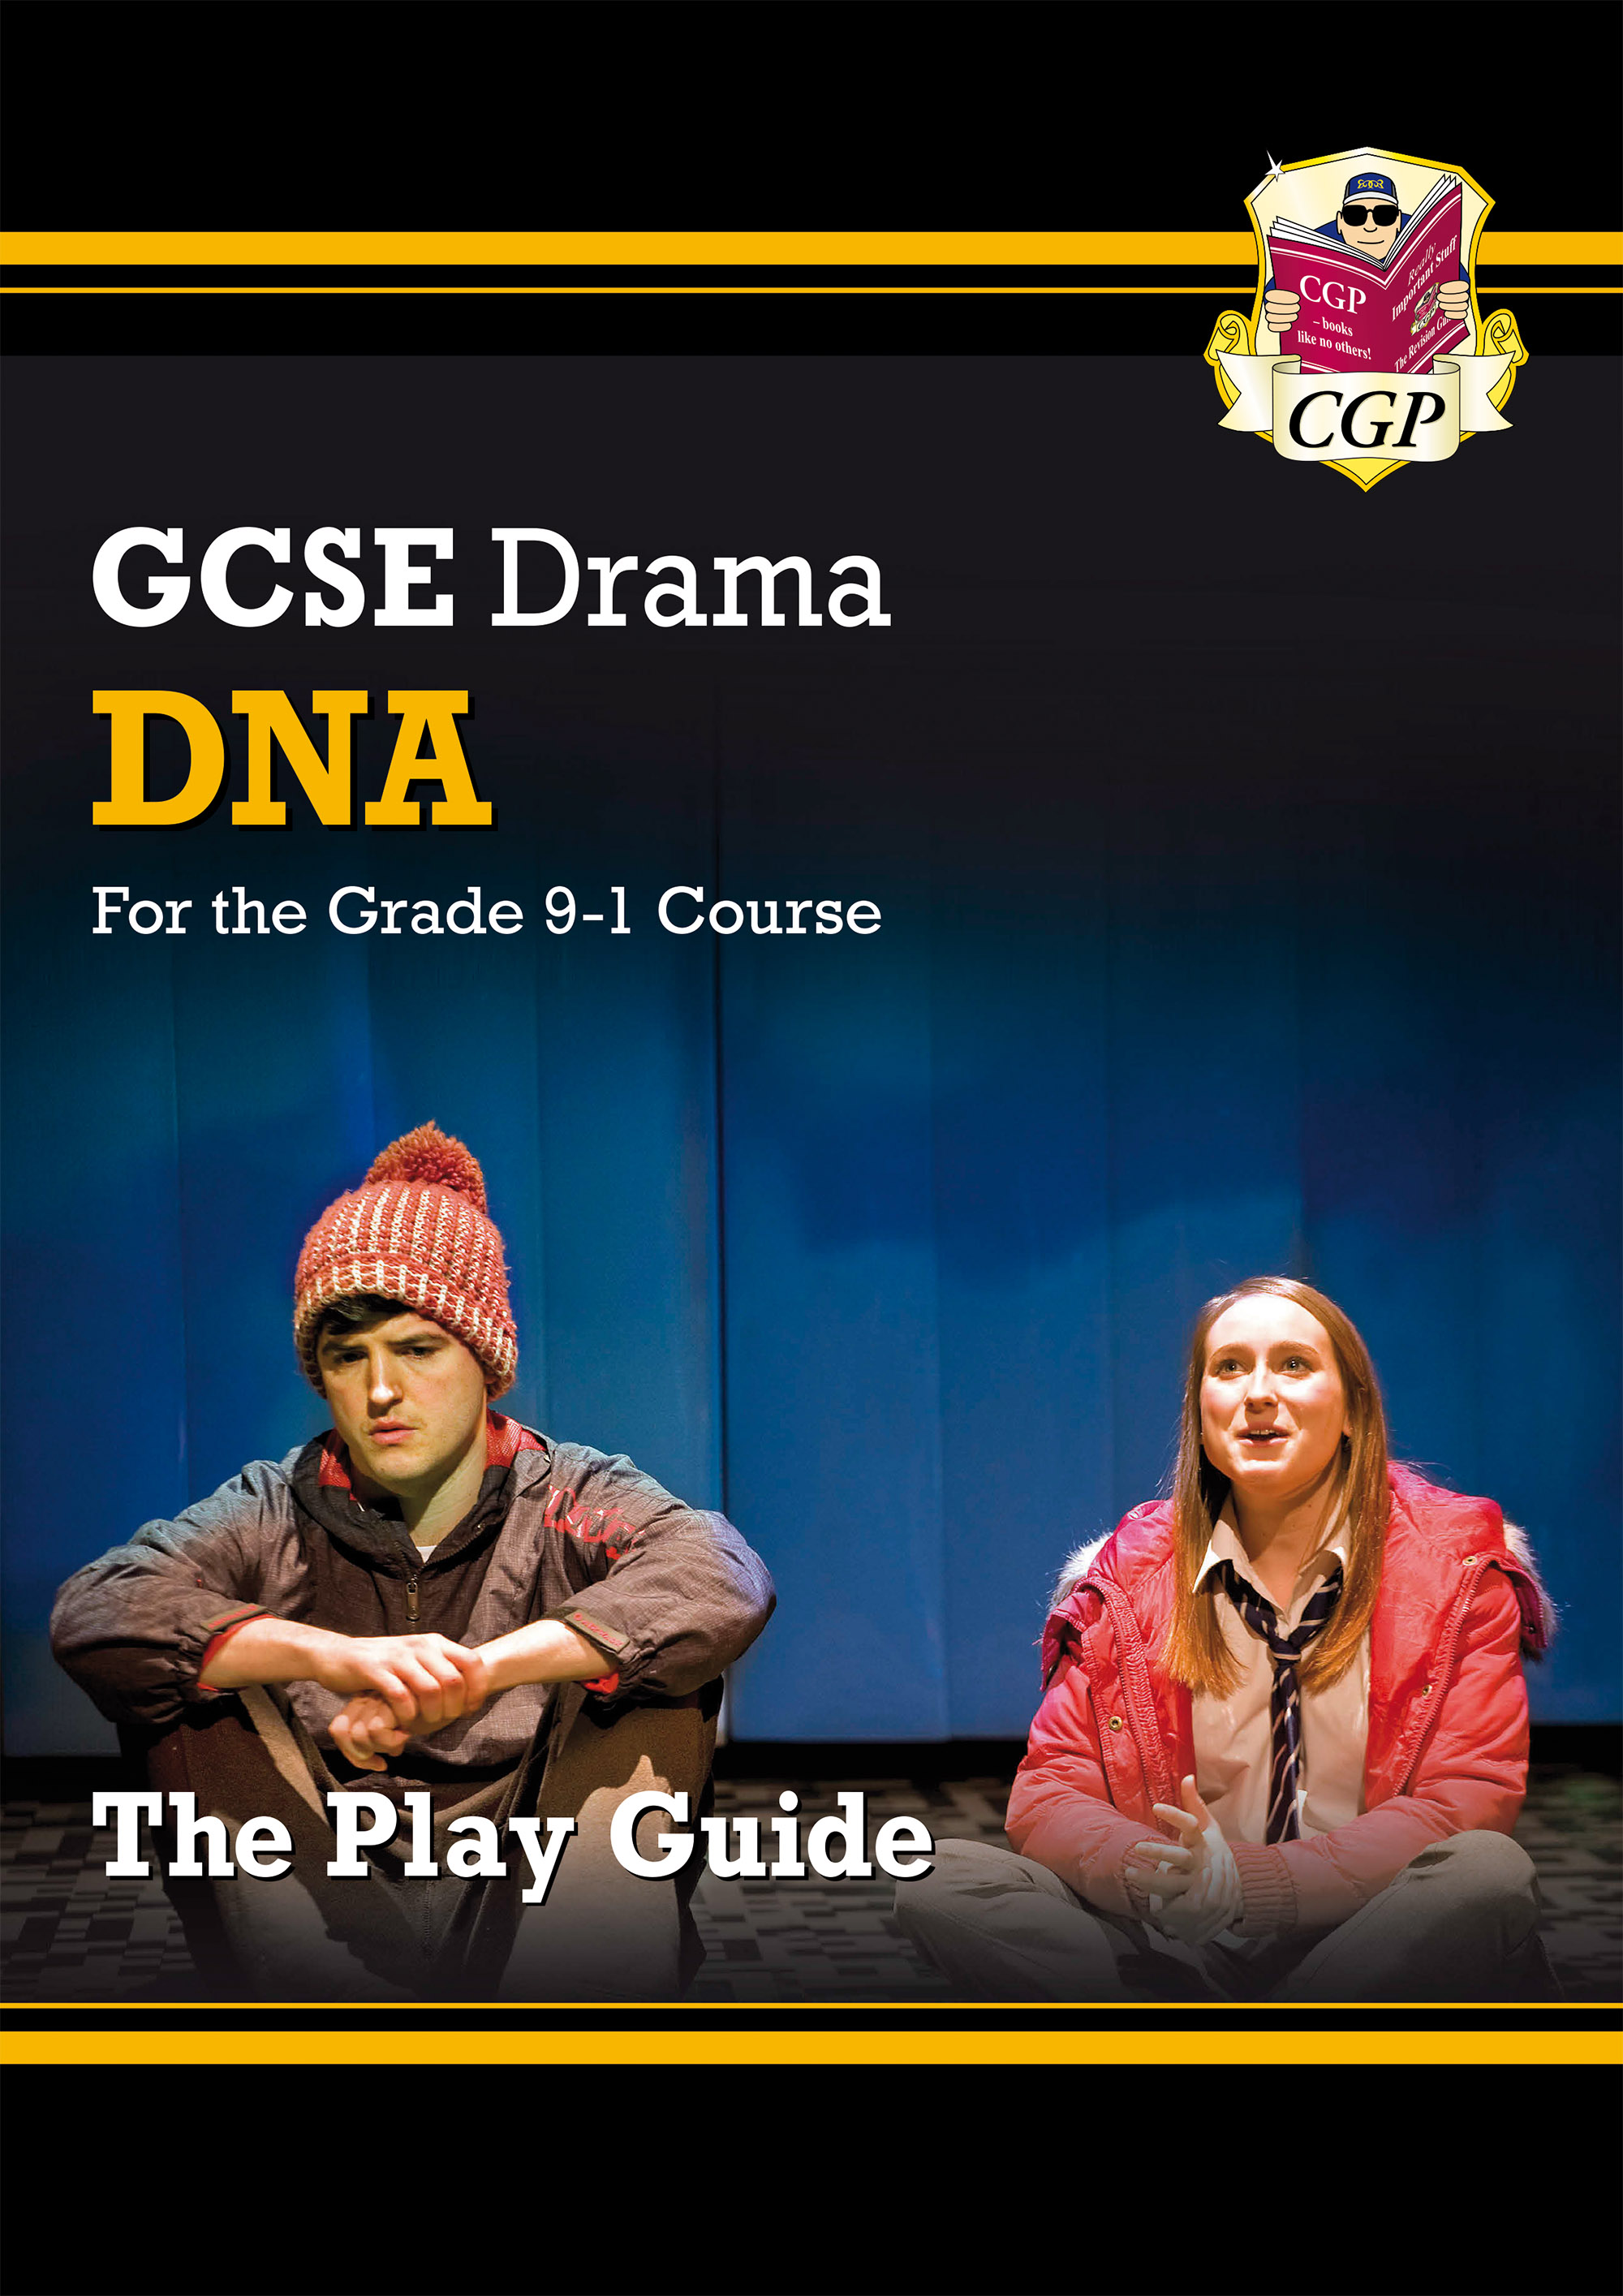 DMPD41DK - New Grade 9-1 GCSE Drama Play Guide - DNA